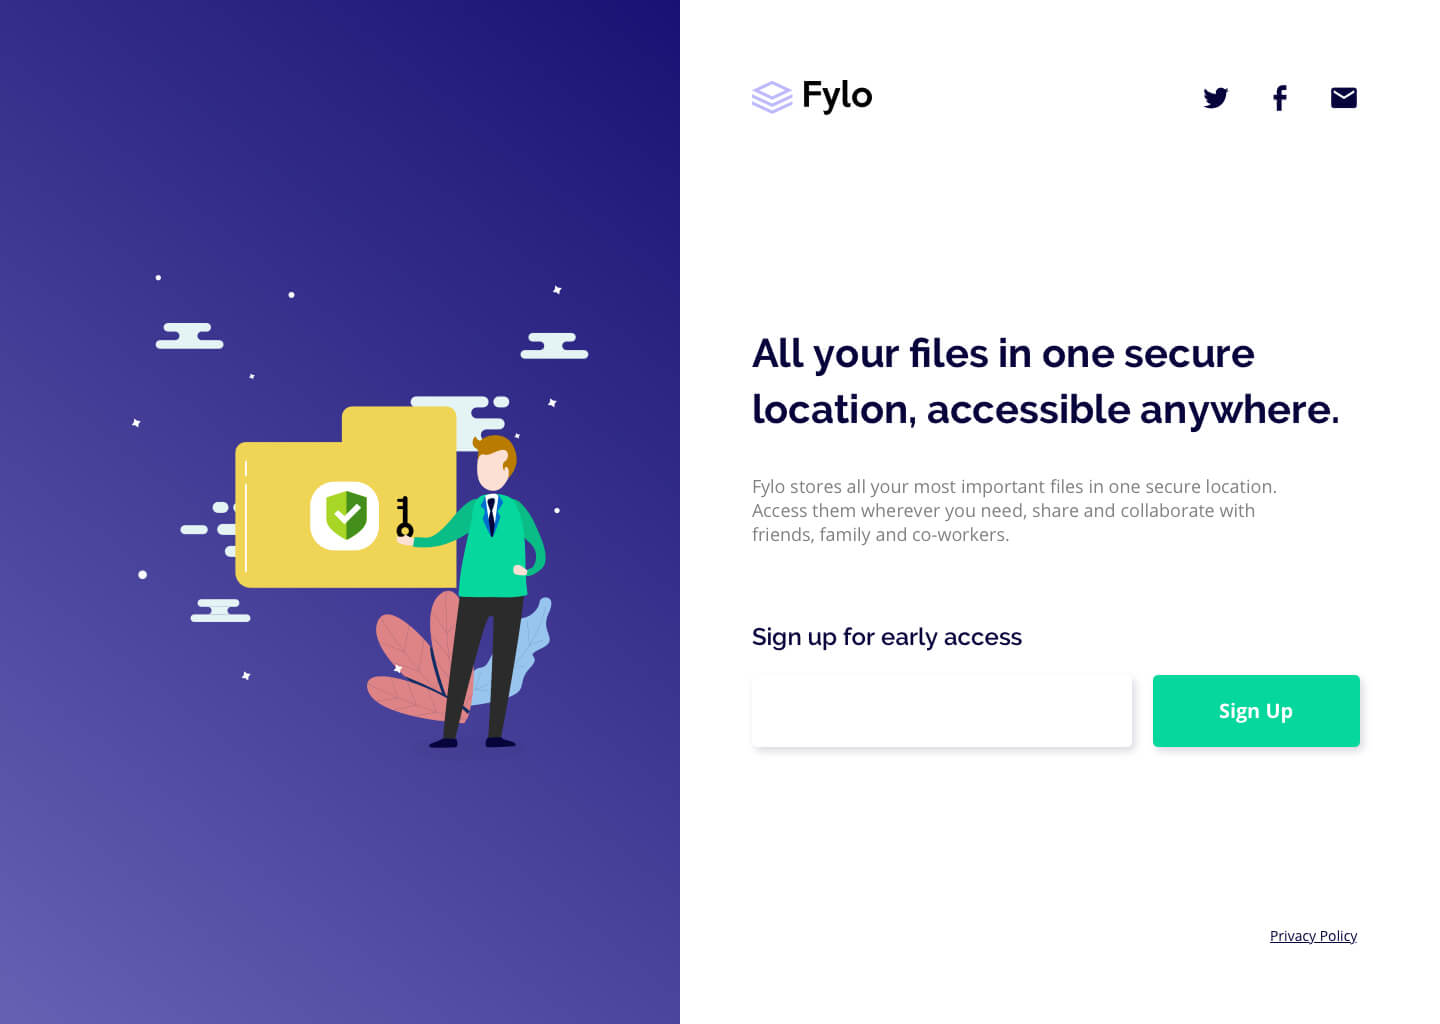 Design preview for Fylo beta sign up landing page coding challenge